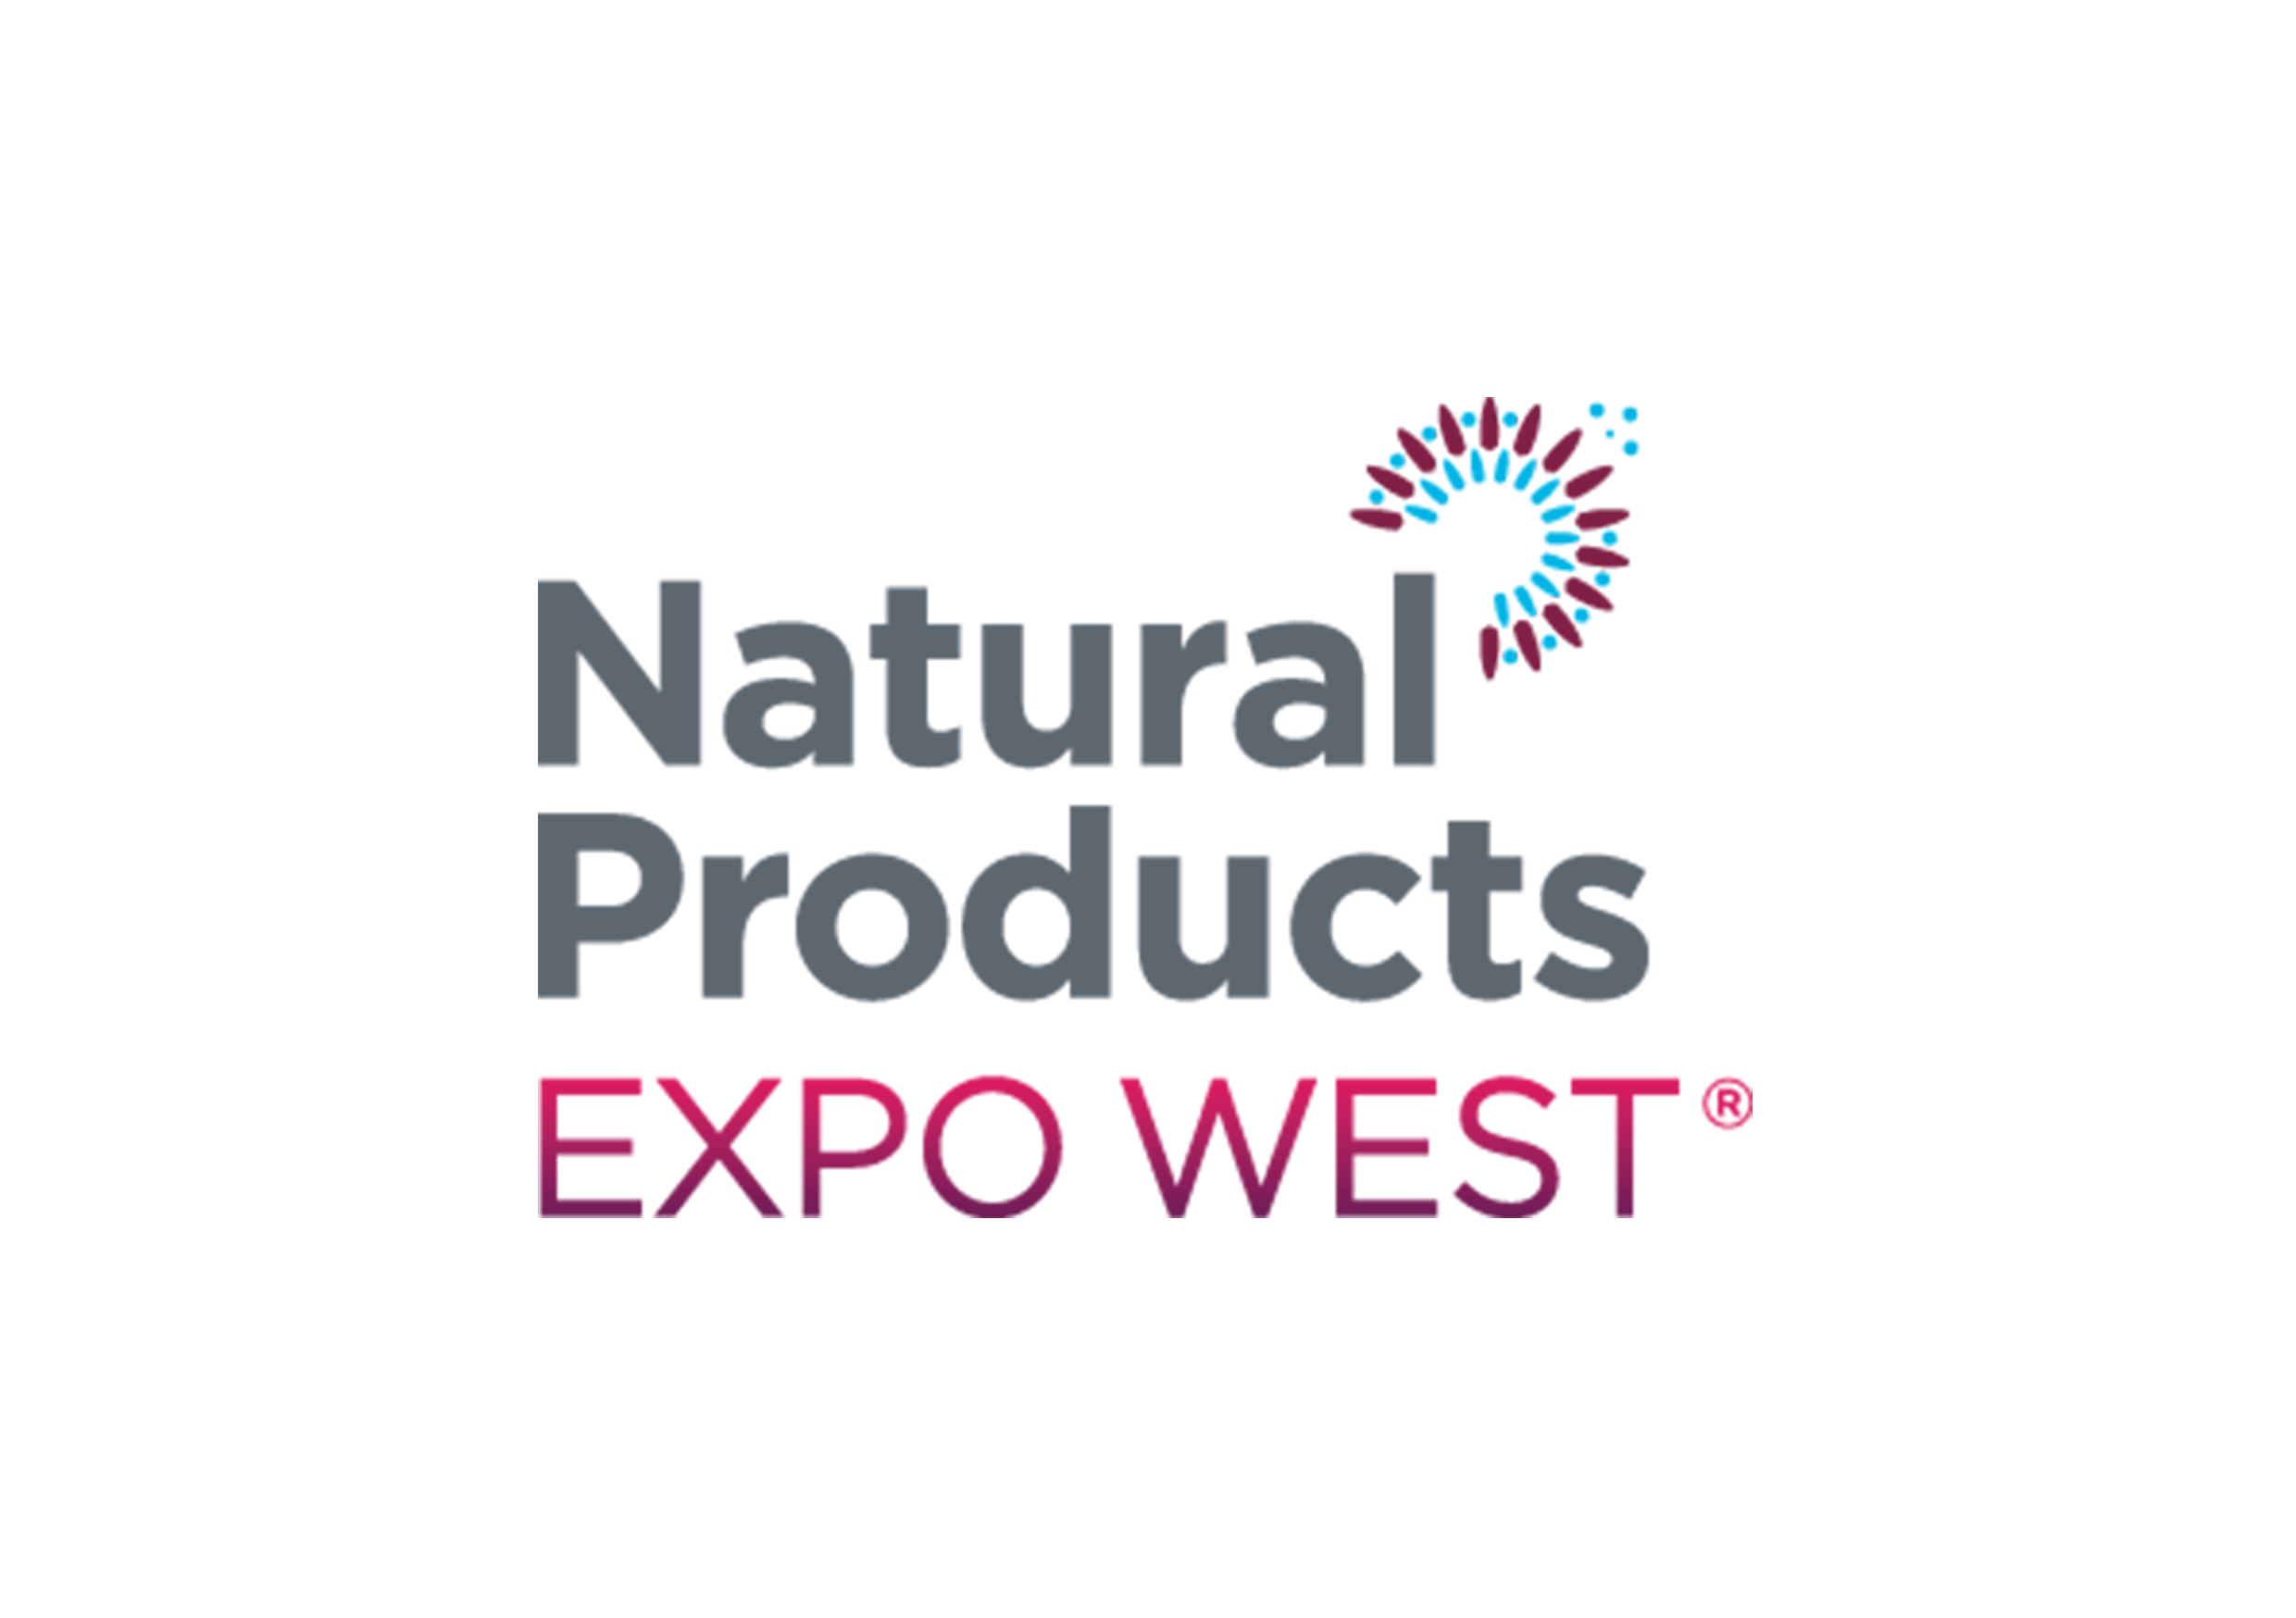 Expo West 2019 logo.png